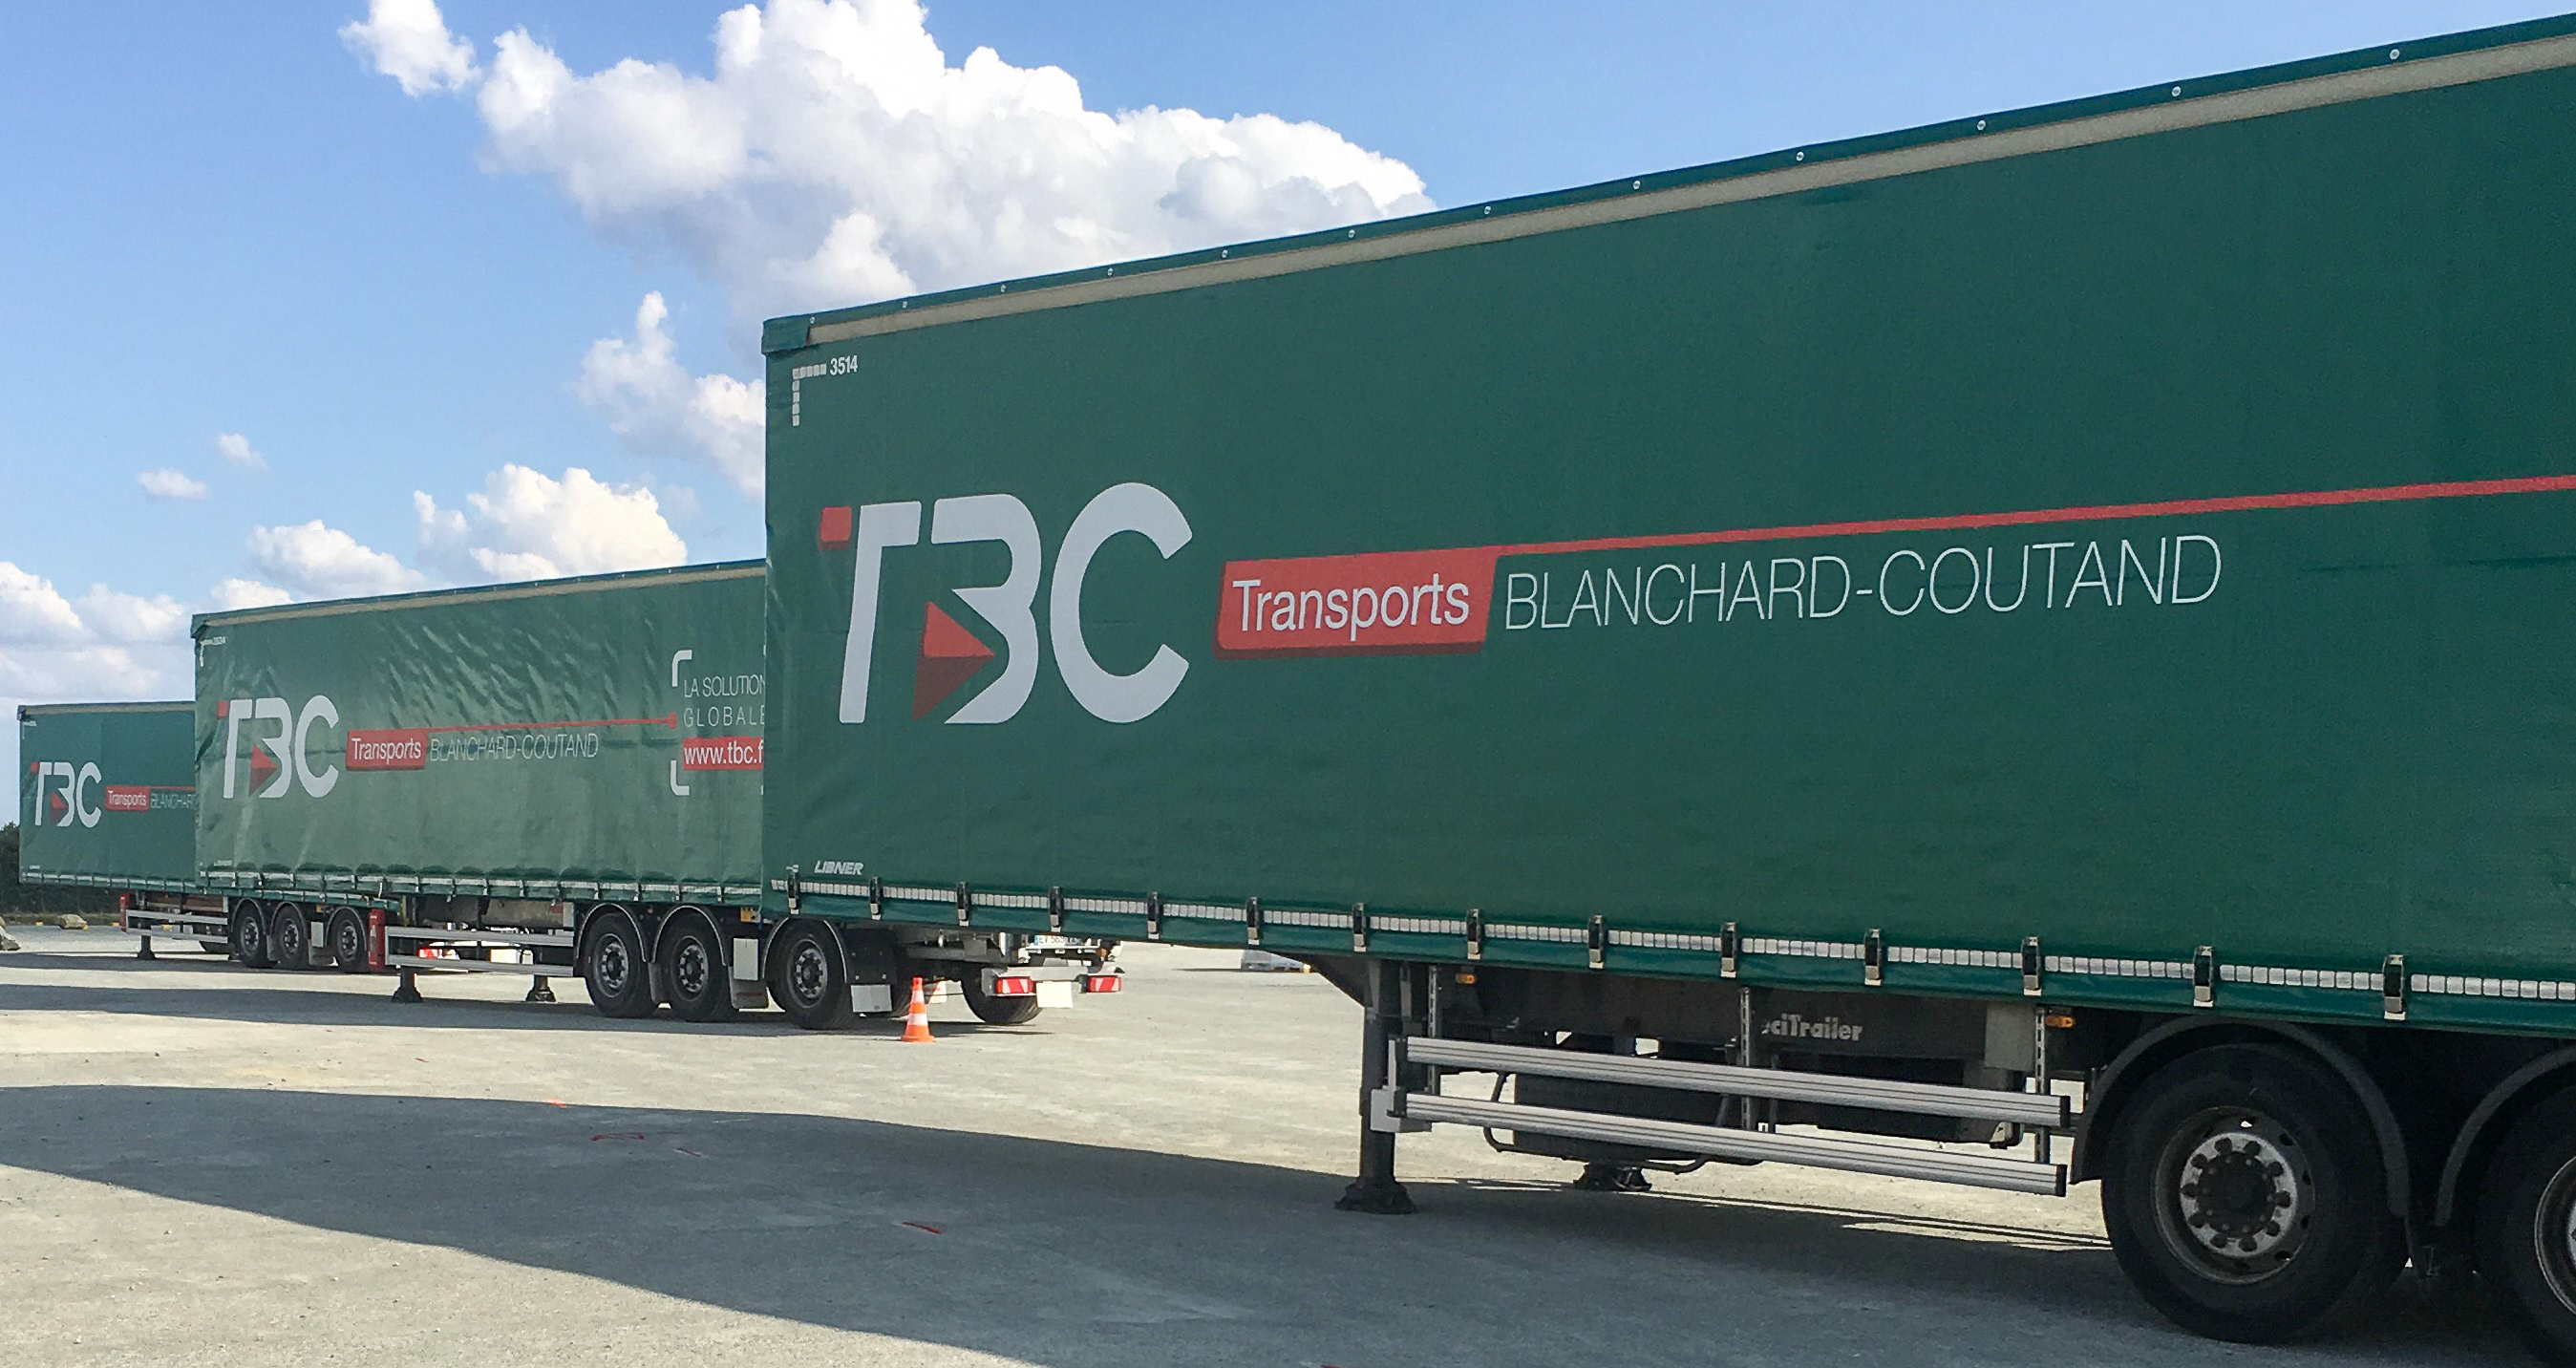 Transports Blanchard-Coutand